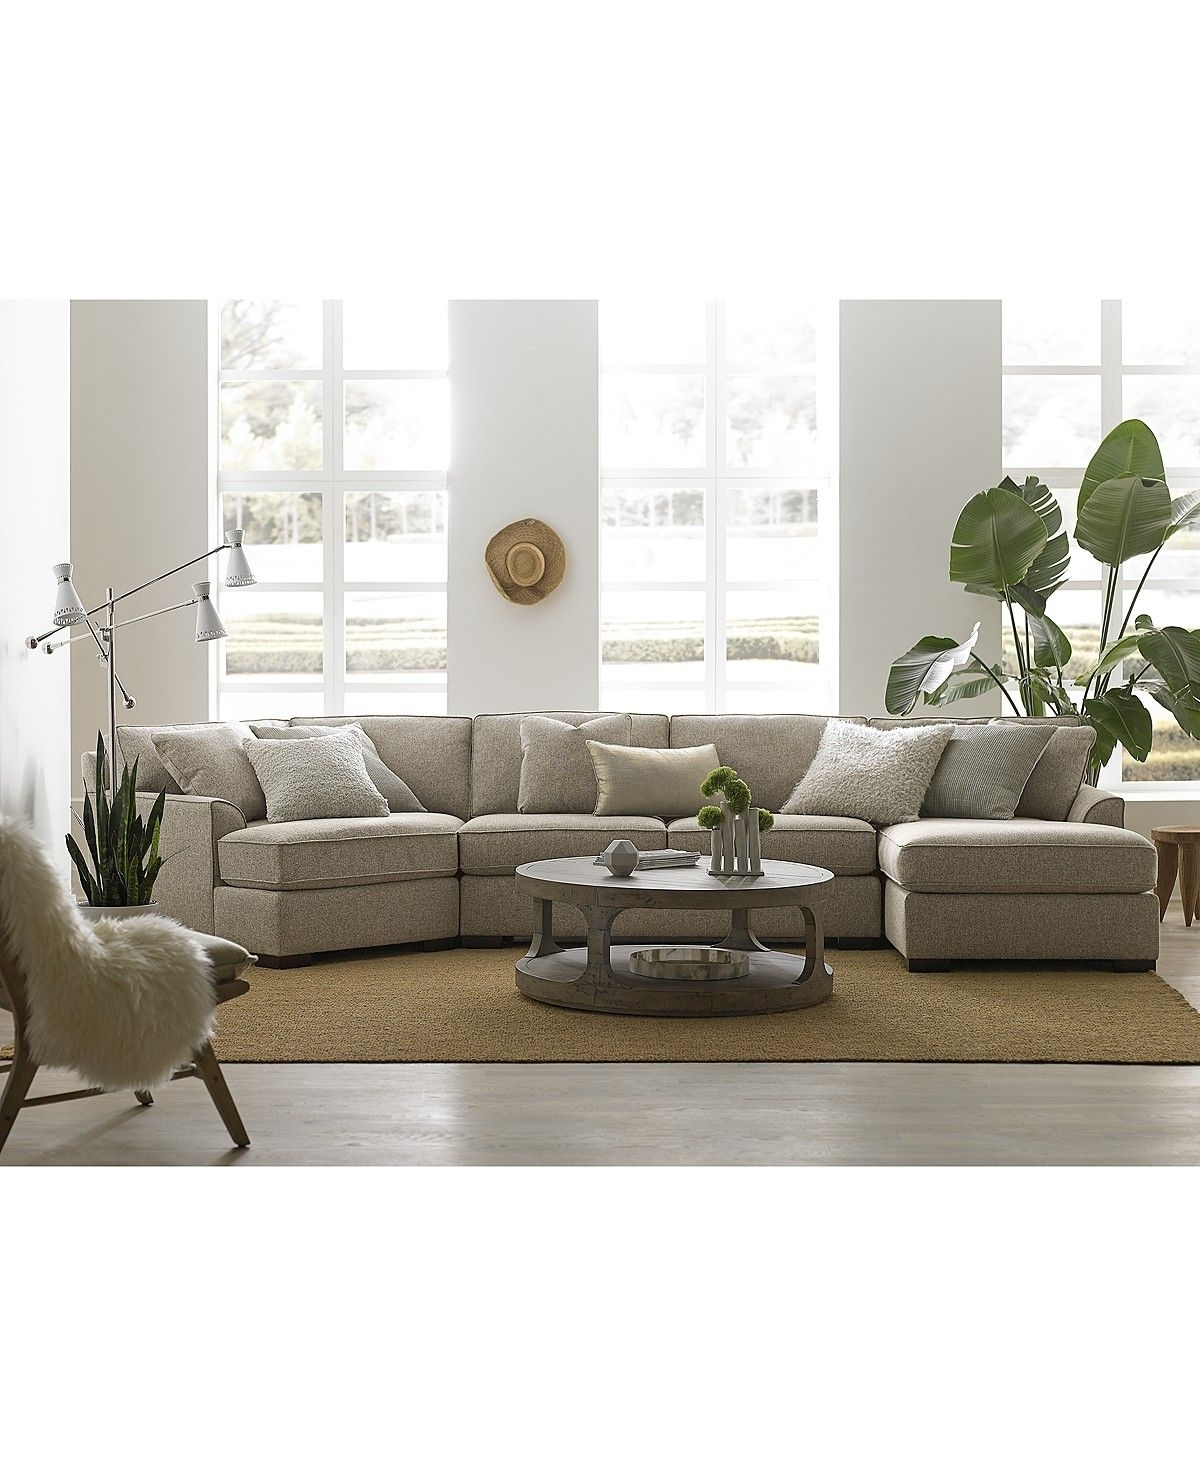 Carena 3-Pc. Fabric Sectional With Cuddler Chaise, Created For with Burton Leather 3 Piece Sectionals With Ottoman (Image 5 of 30)